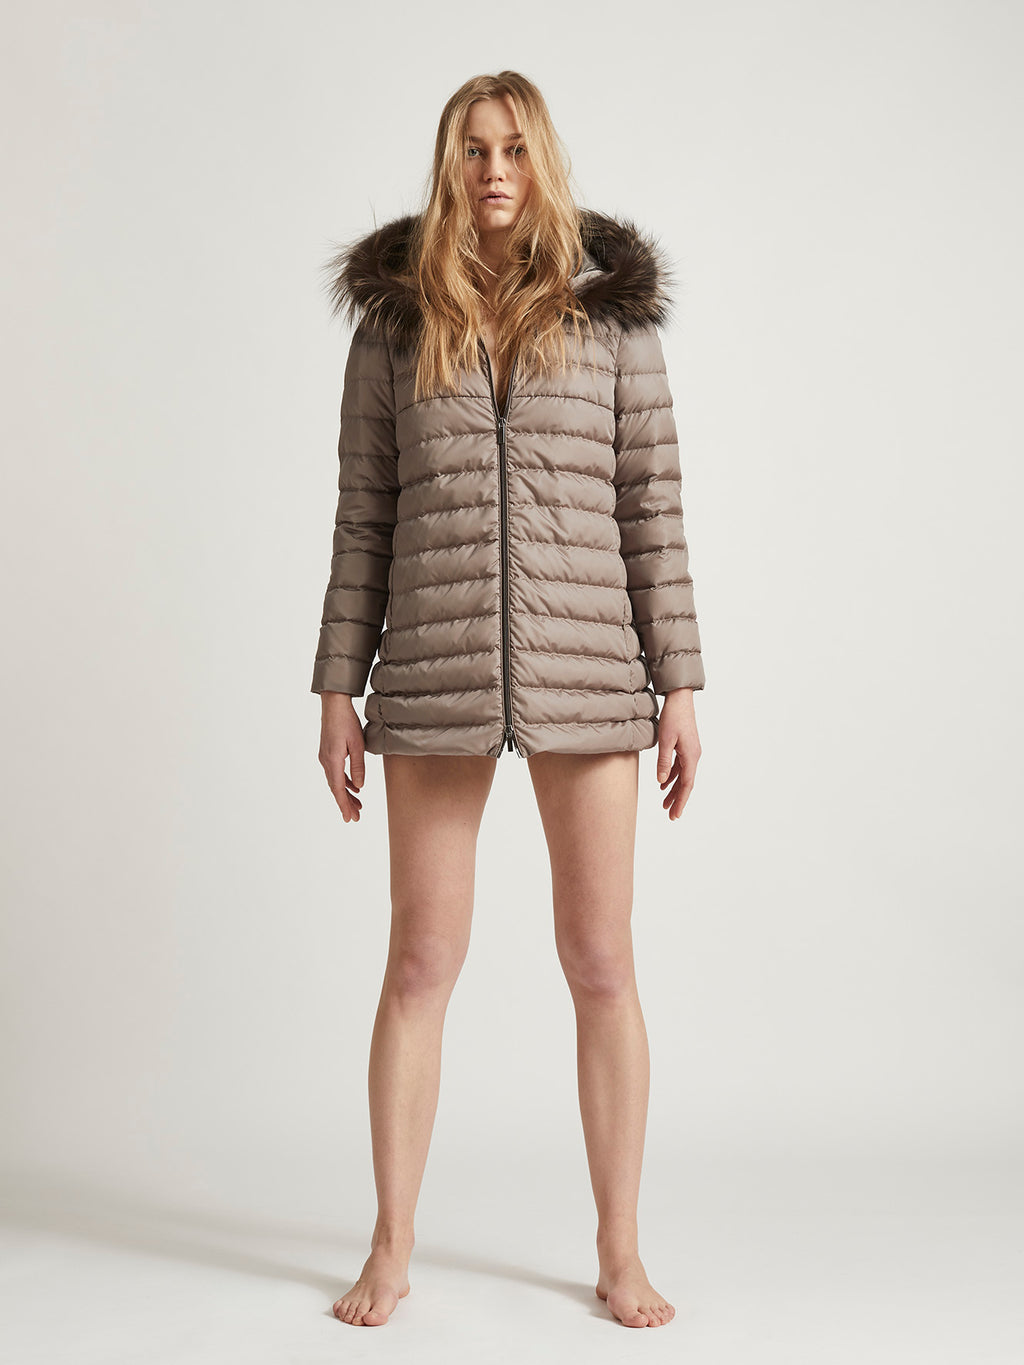 EMILY MINI FUR - Goose Down simple Late Autumn Jacket style with hood